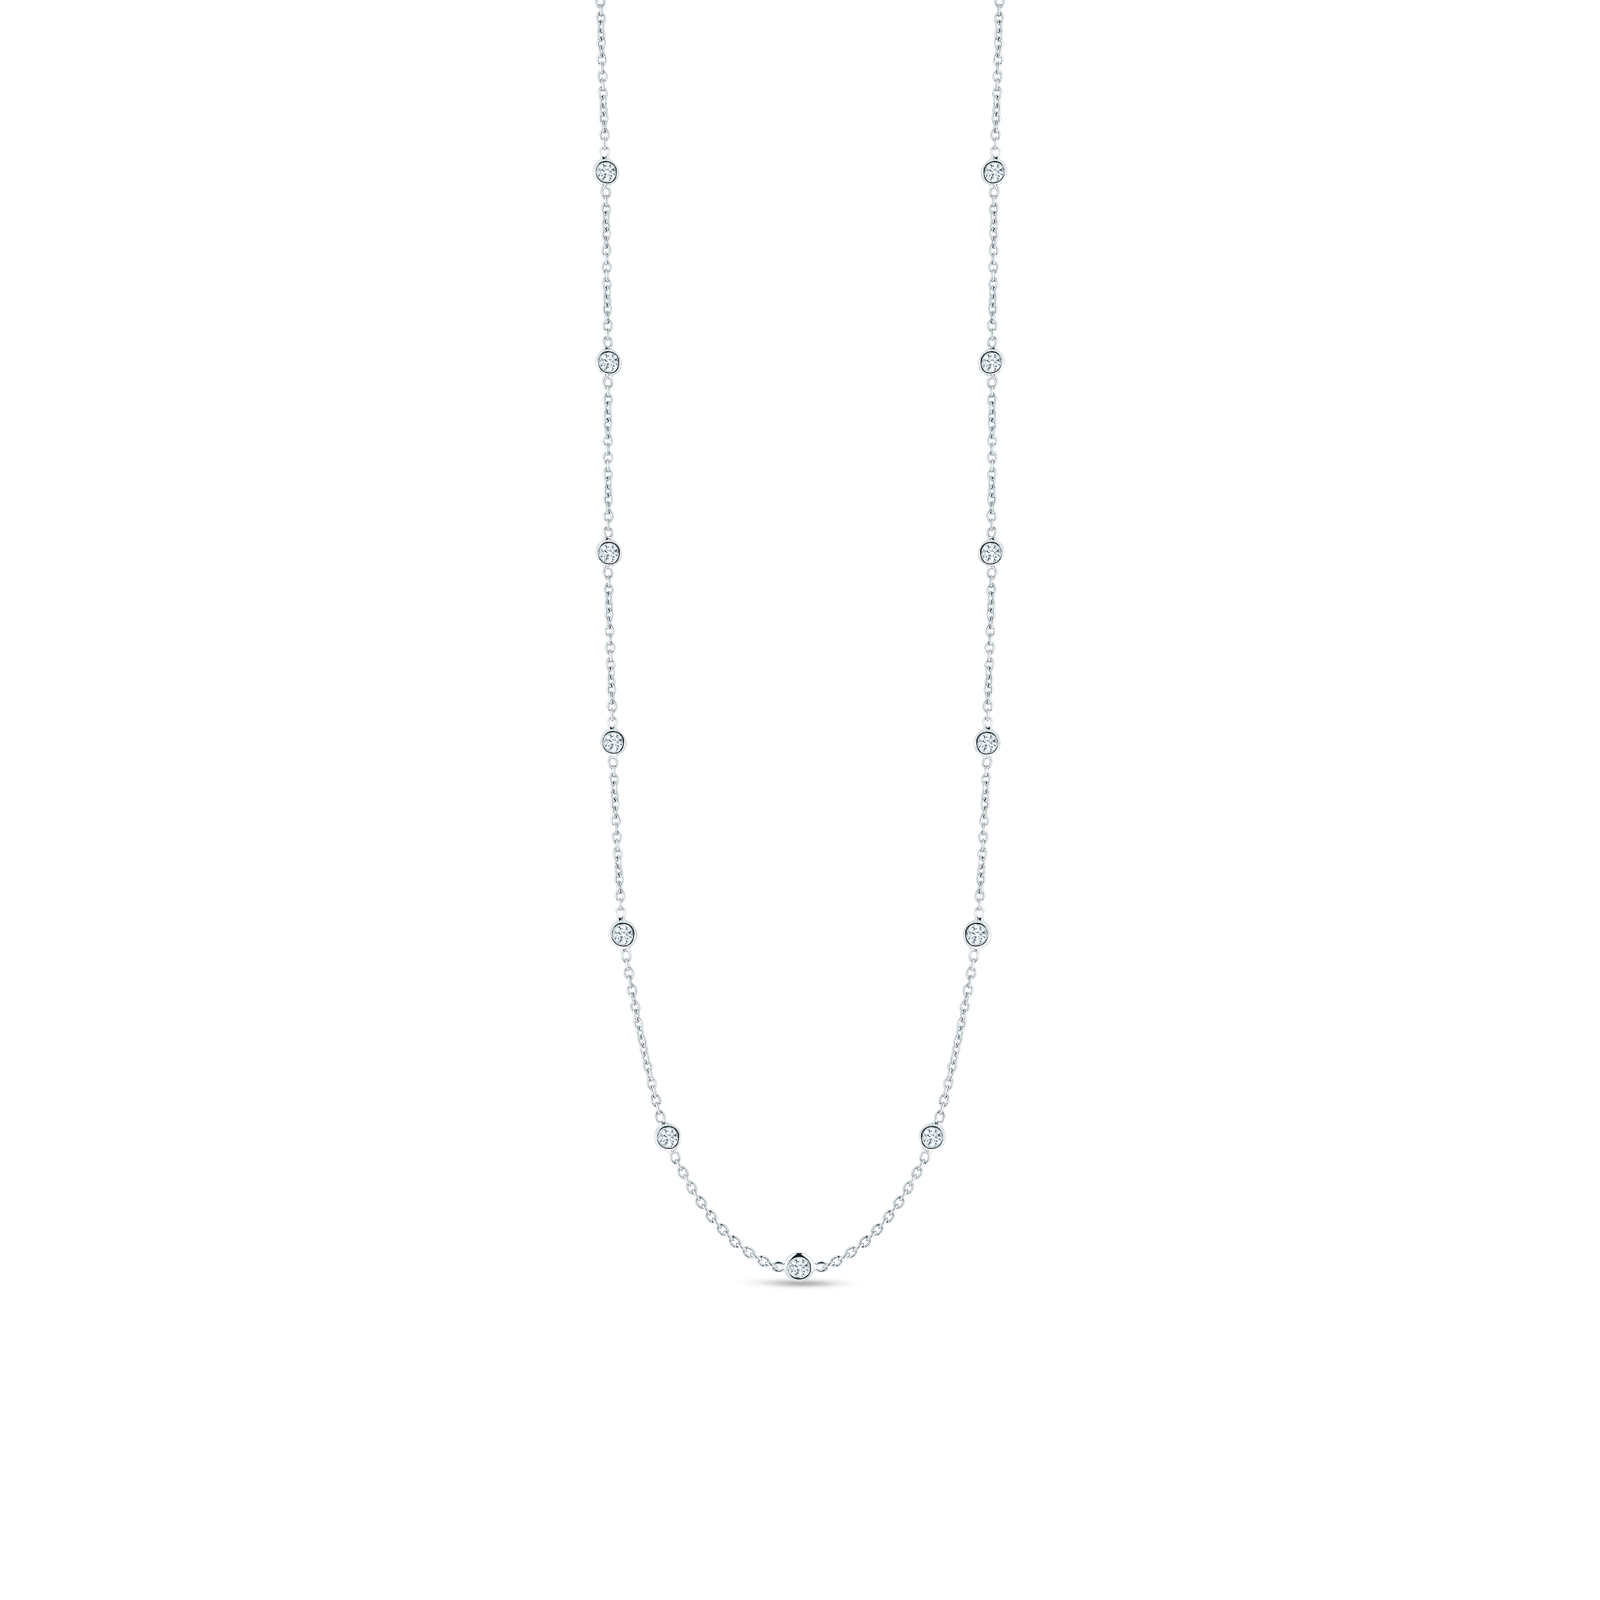 Roberto-Coin-Diamonds-by-the-Inch-18K-White-Gold-Necklace-with-19-Diamond-Stations-001157AW2119 copy